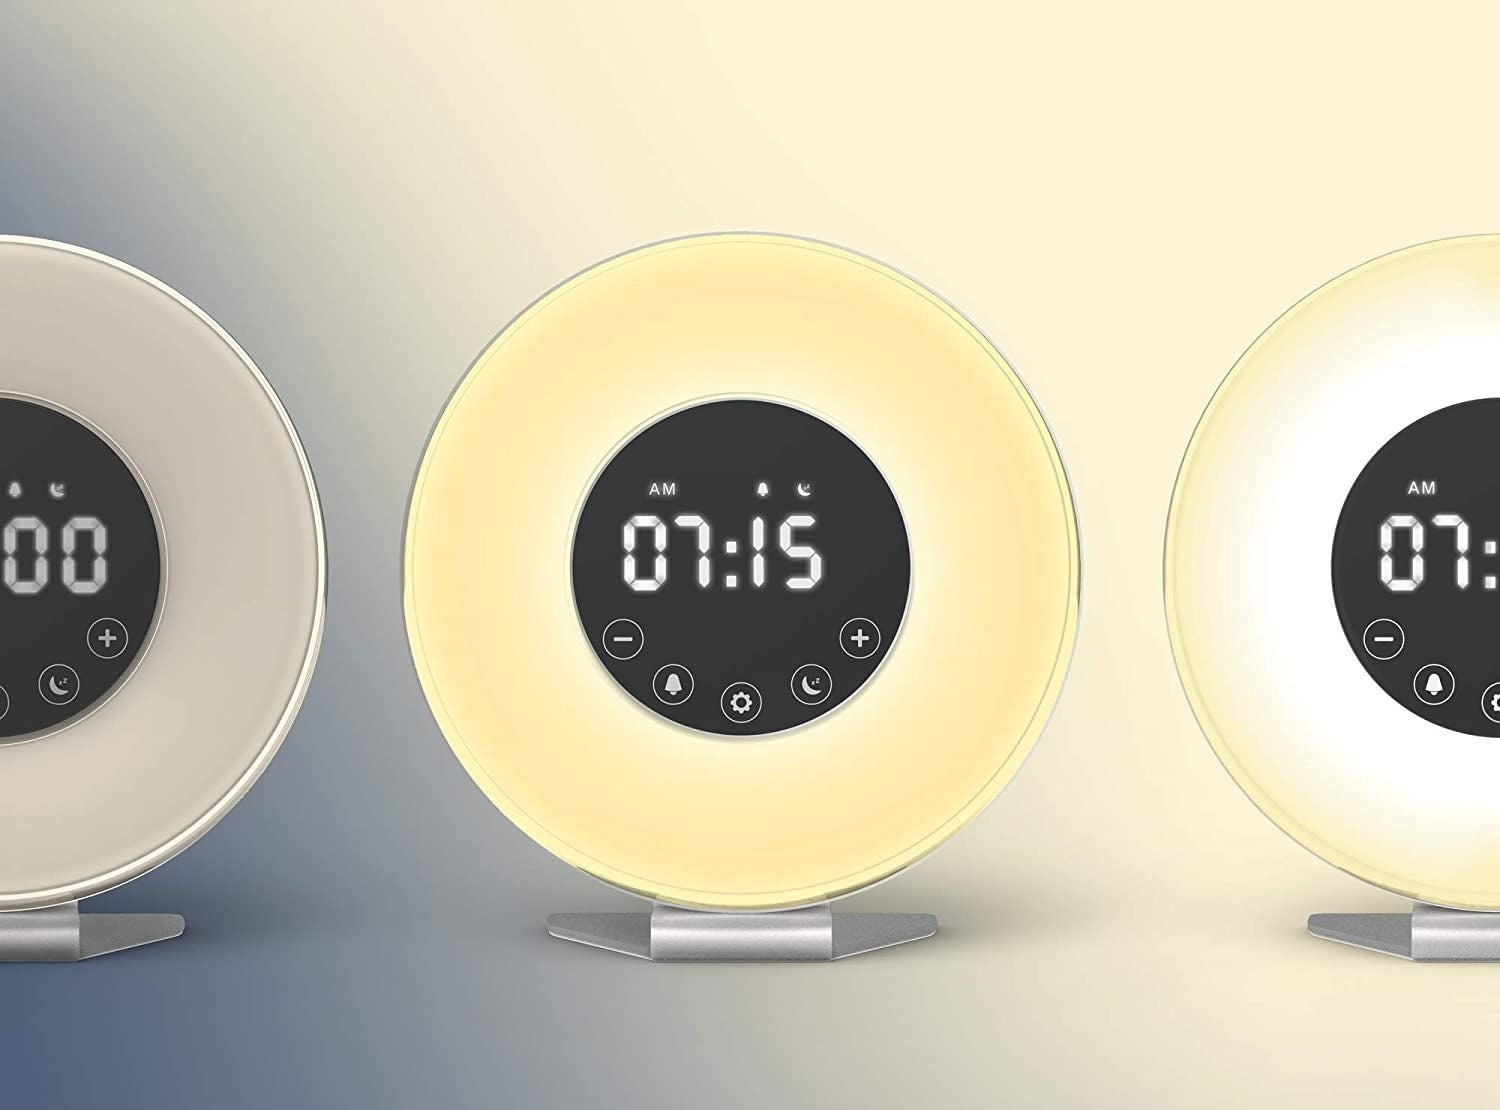 The round digital clock in three settings of brightness as time passes